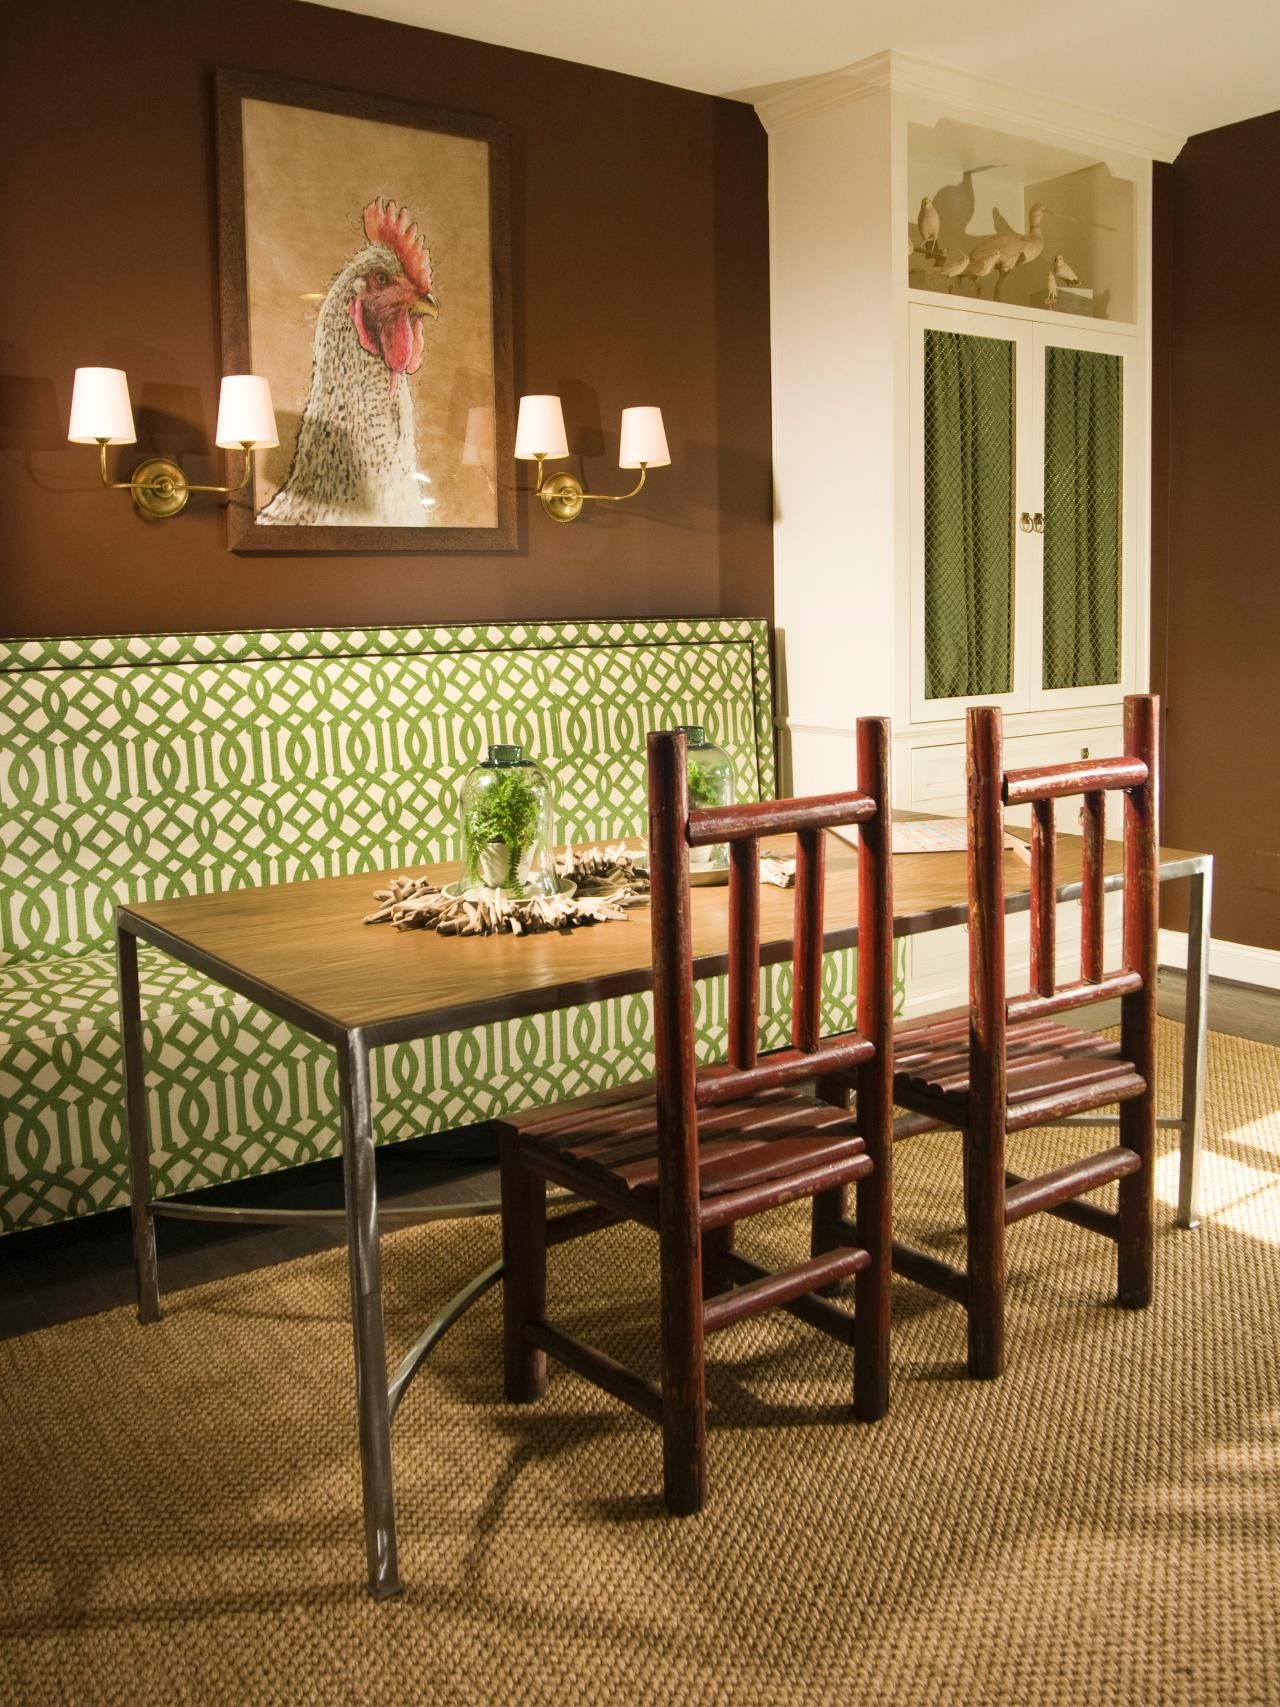 This Dining Area Features A Green Upholstered Banquette, A Table